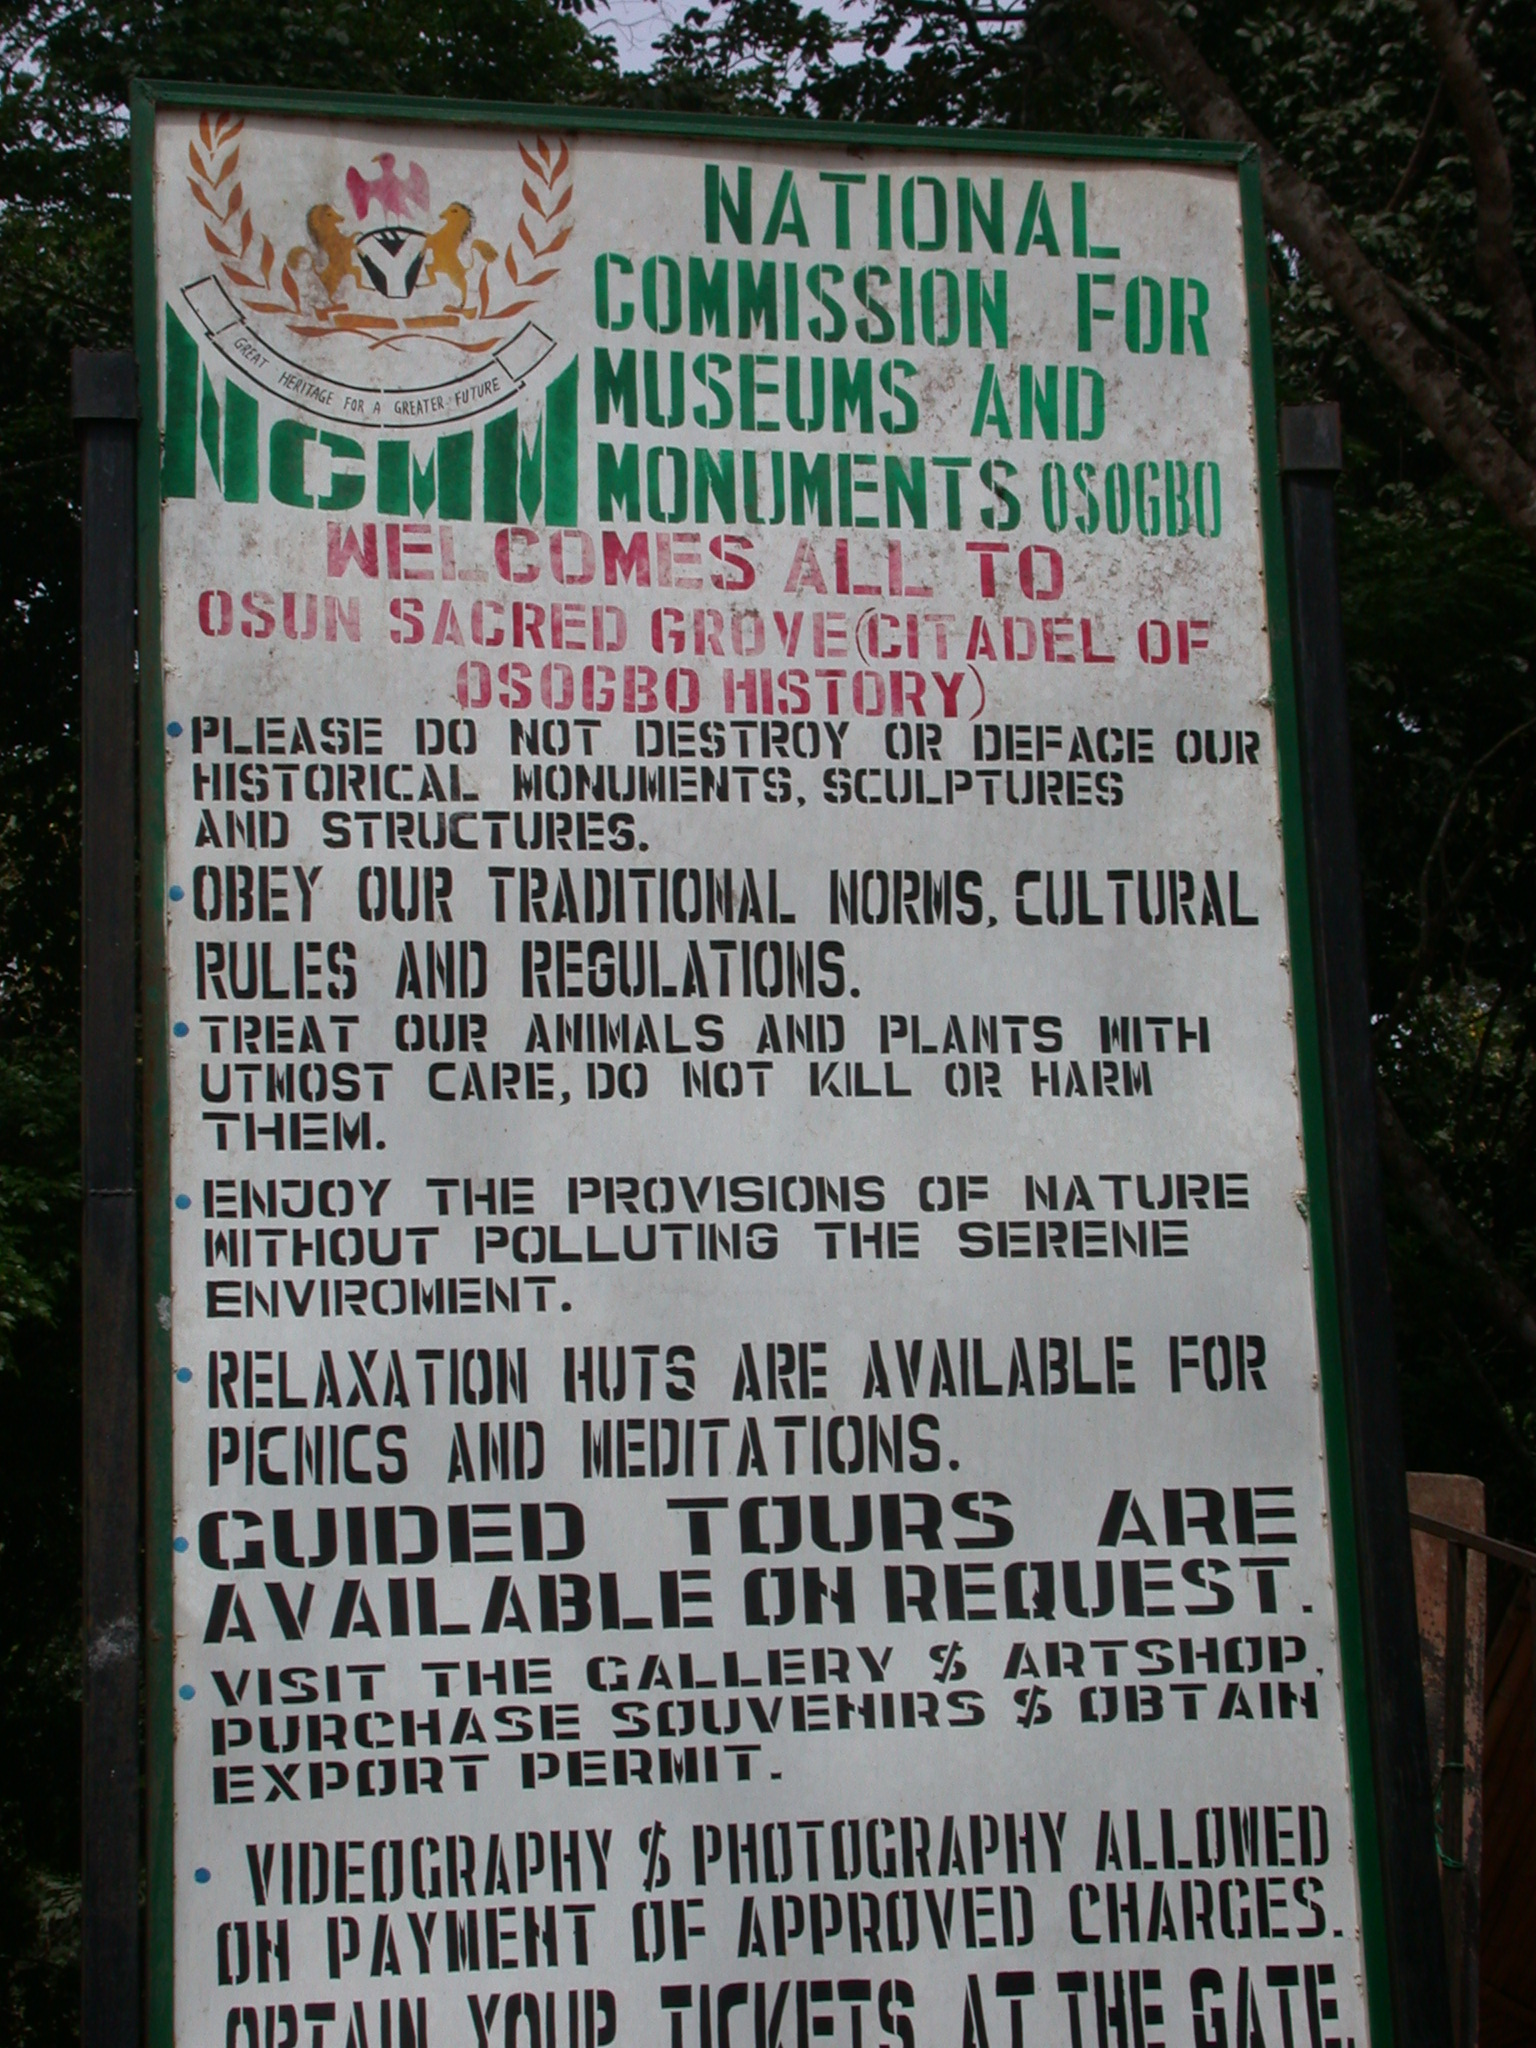 UNESCO Sign for Osun Sacred Grove, Oshogbo, Nigeria